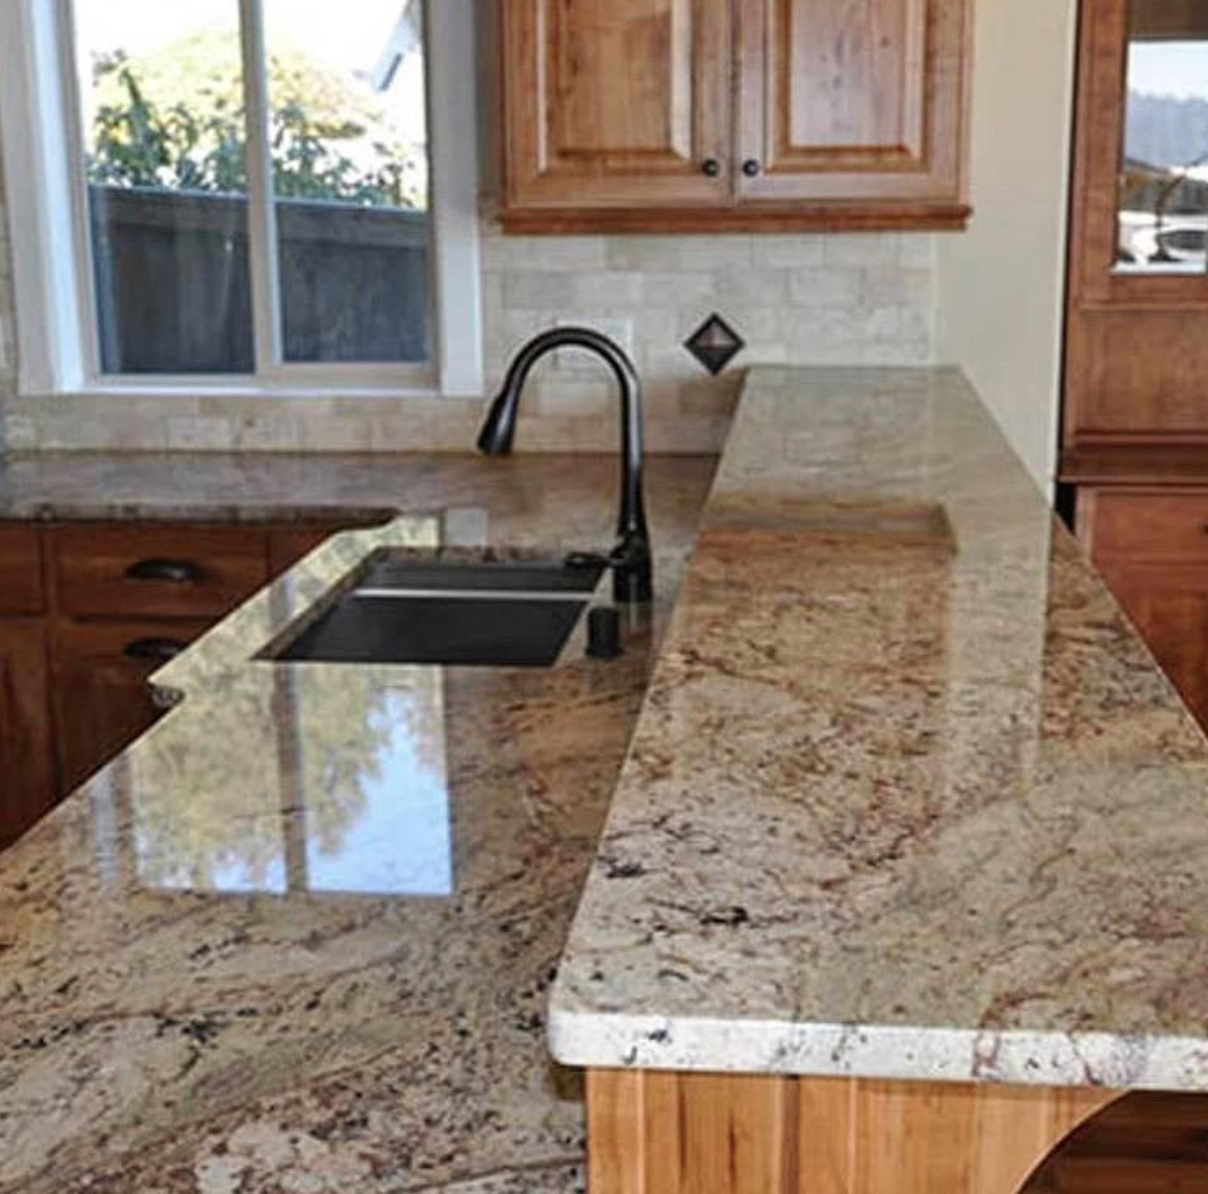 Amazing Work Thank You For Sharing This With Us U Granites Cabinets More This Cab Countertops Outdoor Kitchen Countertops Solid Surface Countertops Kitchen